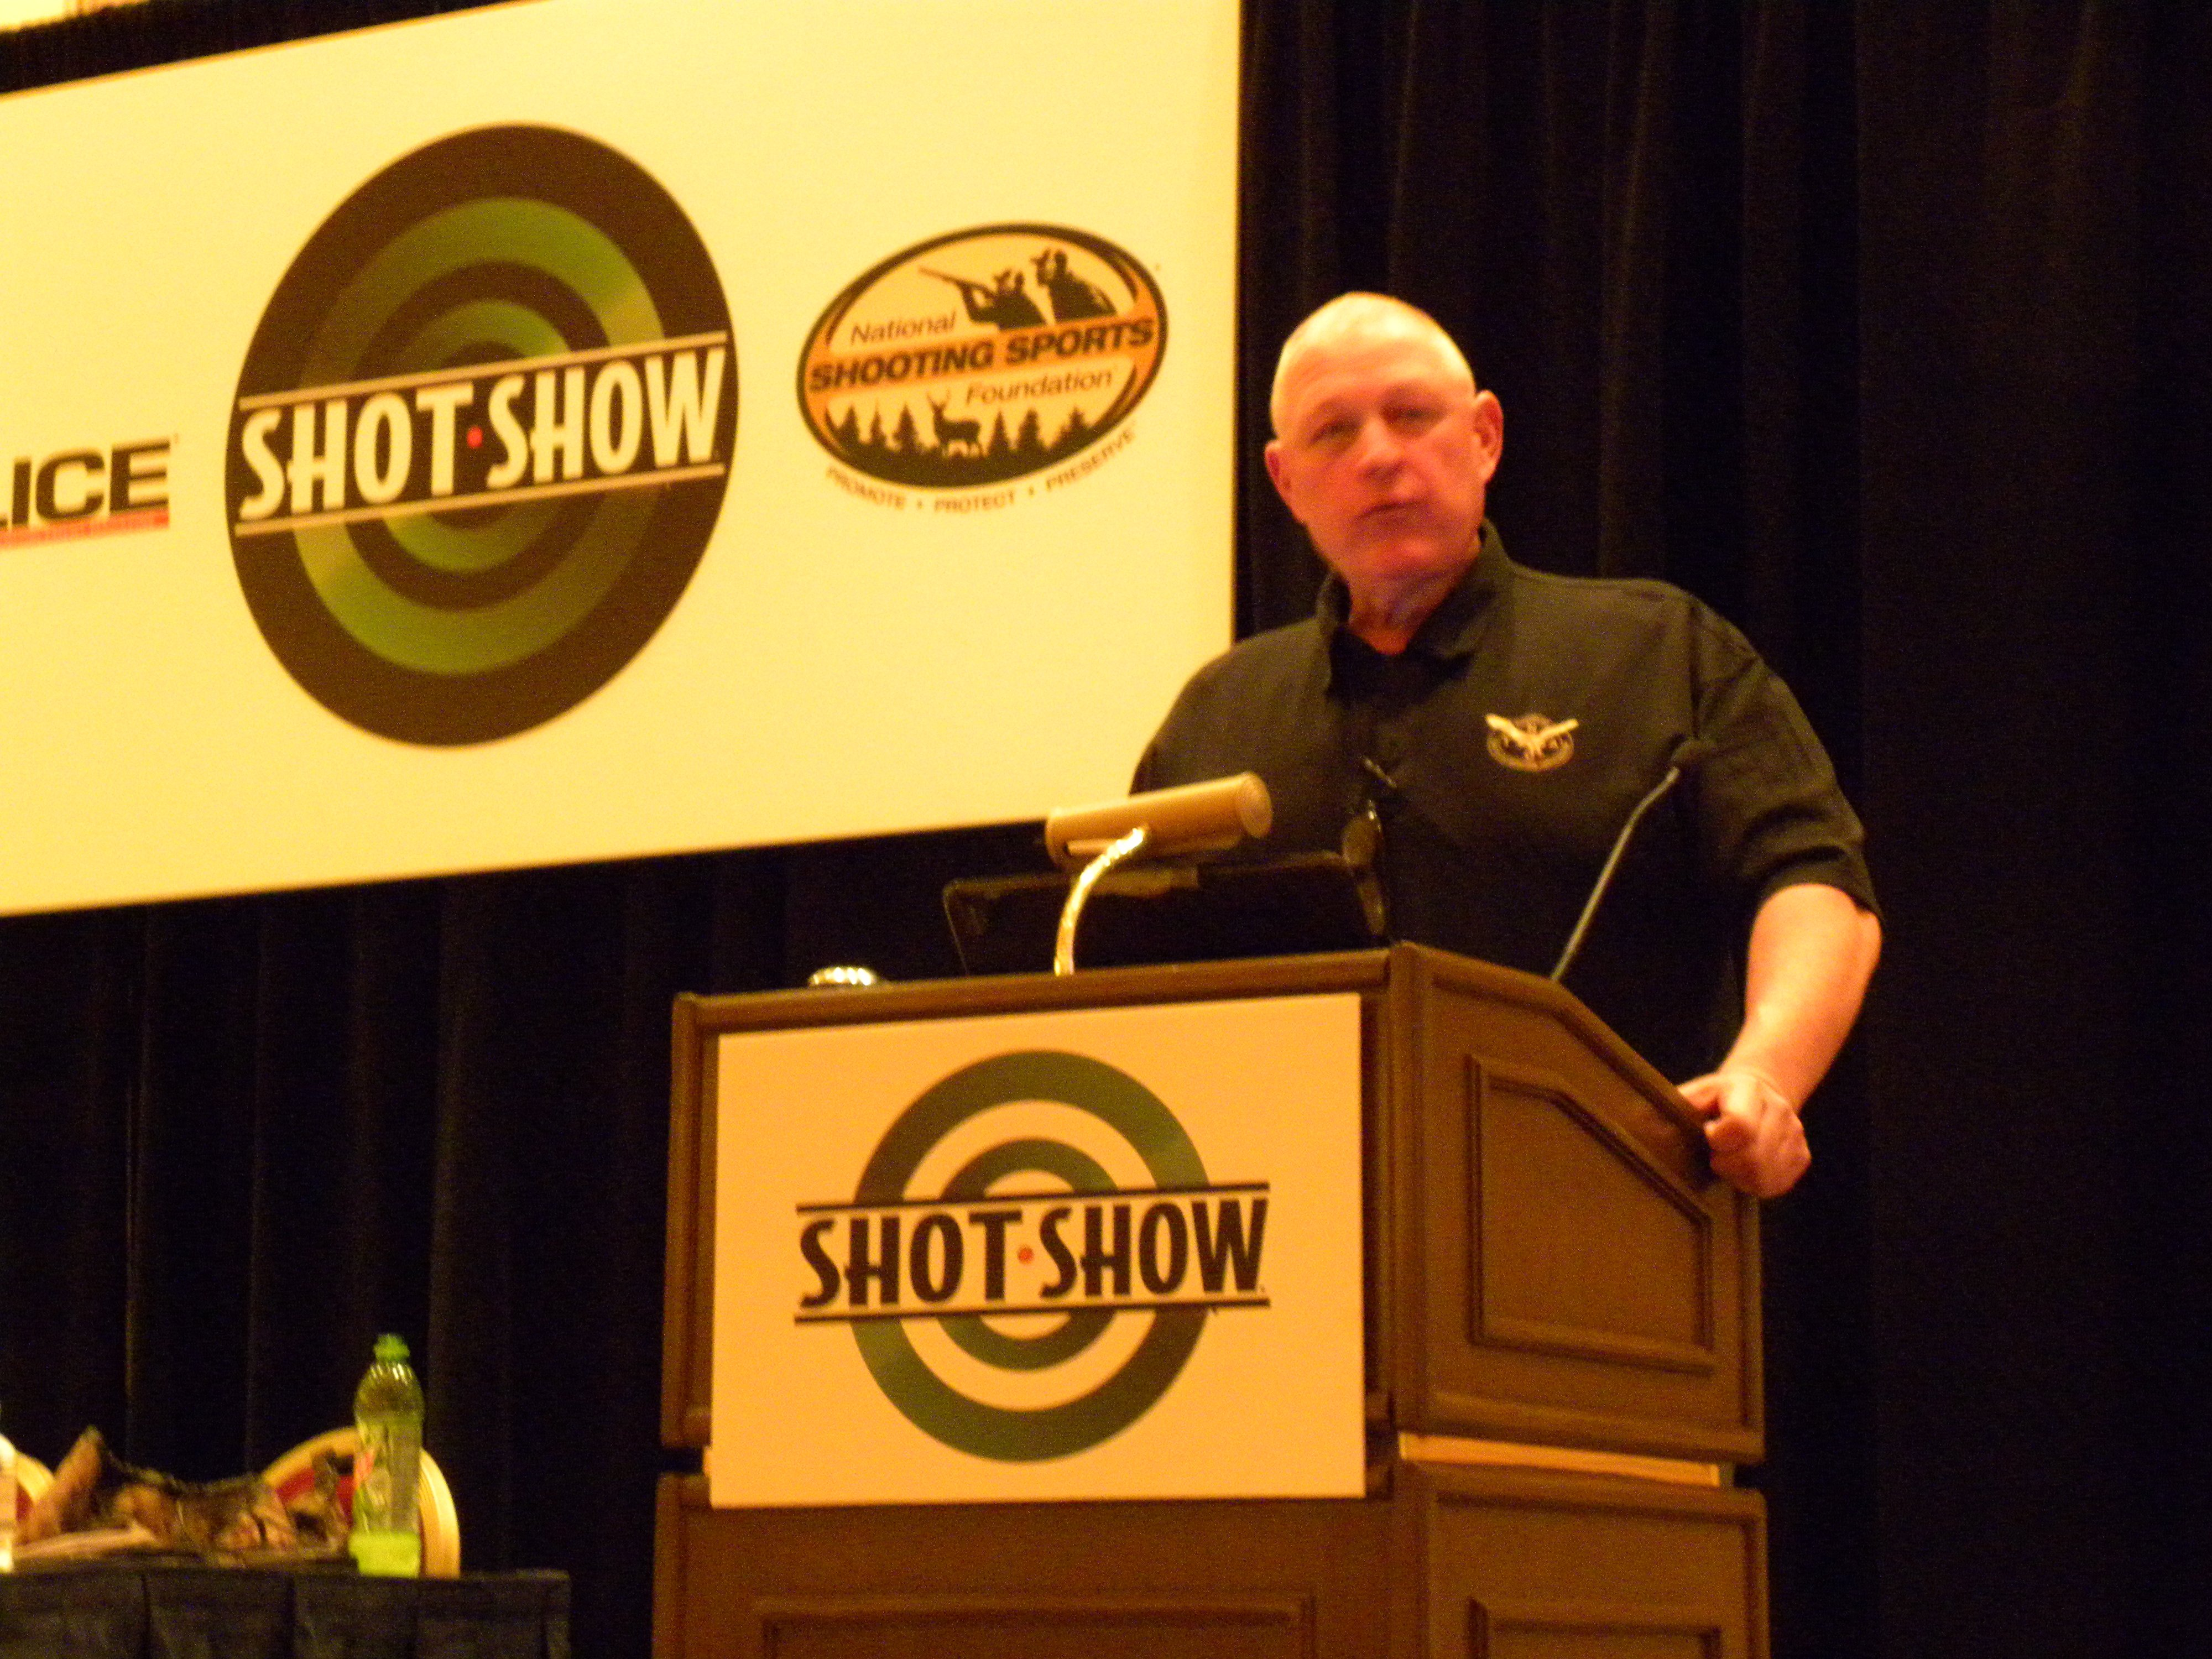 POLICE Magazine and NSSF Sponsor Low-Cost Law Enforcement Training at SHOT Show 2018